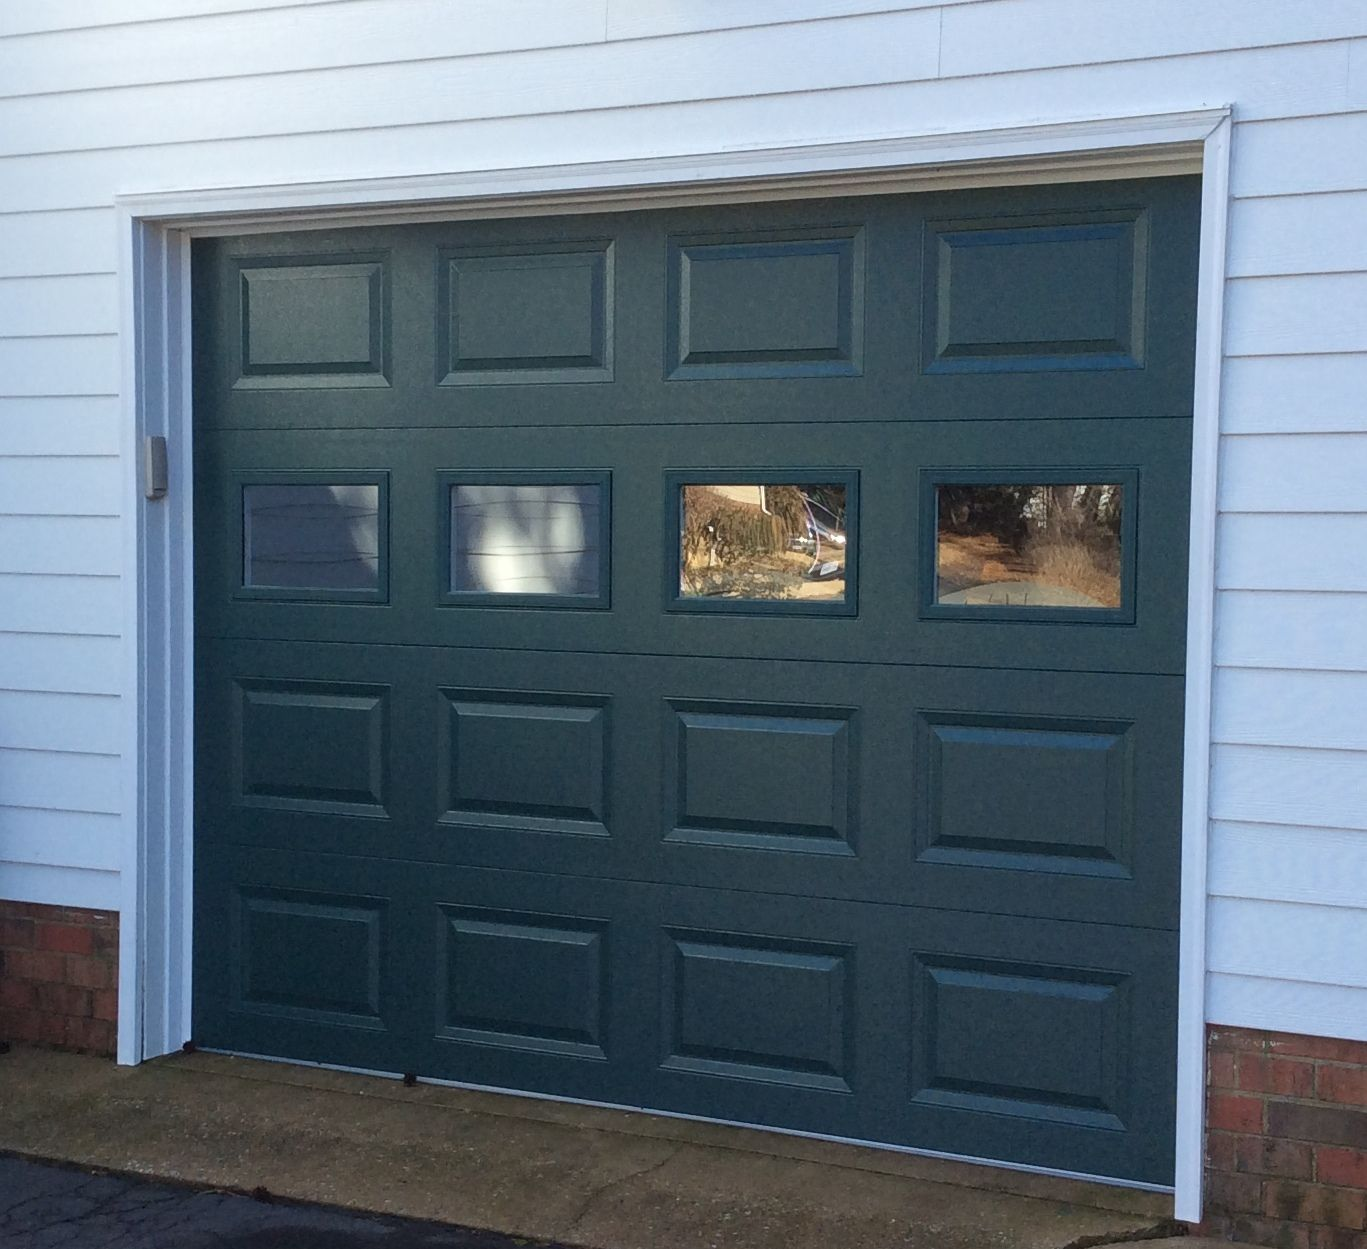 9x7 model 2216 raised panel garage door with 3rd row plain glass 9x7 model 2216 raised panel garage door with 3rd row plain glass installed by the richmond rubansaba